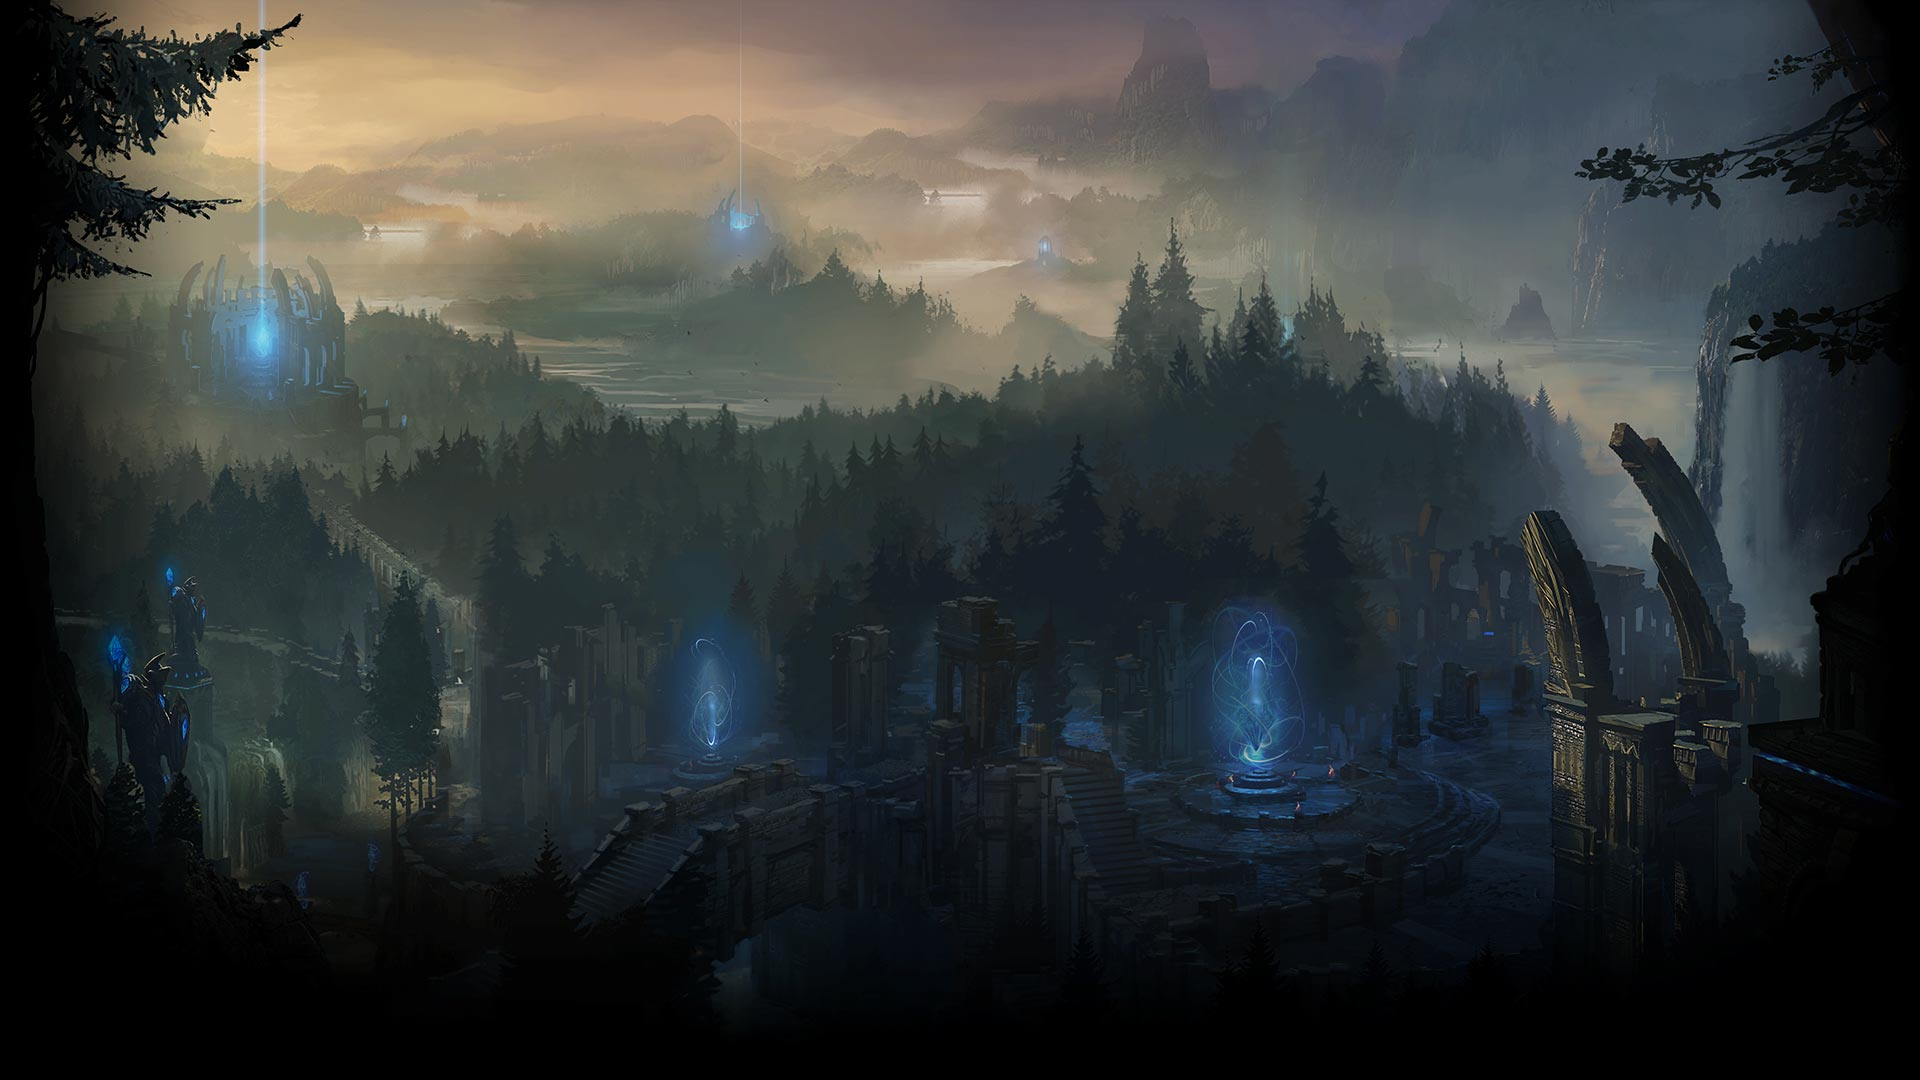 Summoners Rift Wallpaper   League of Legends Community 1920x1080